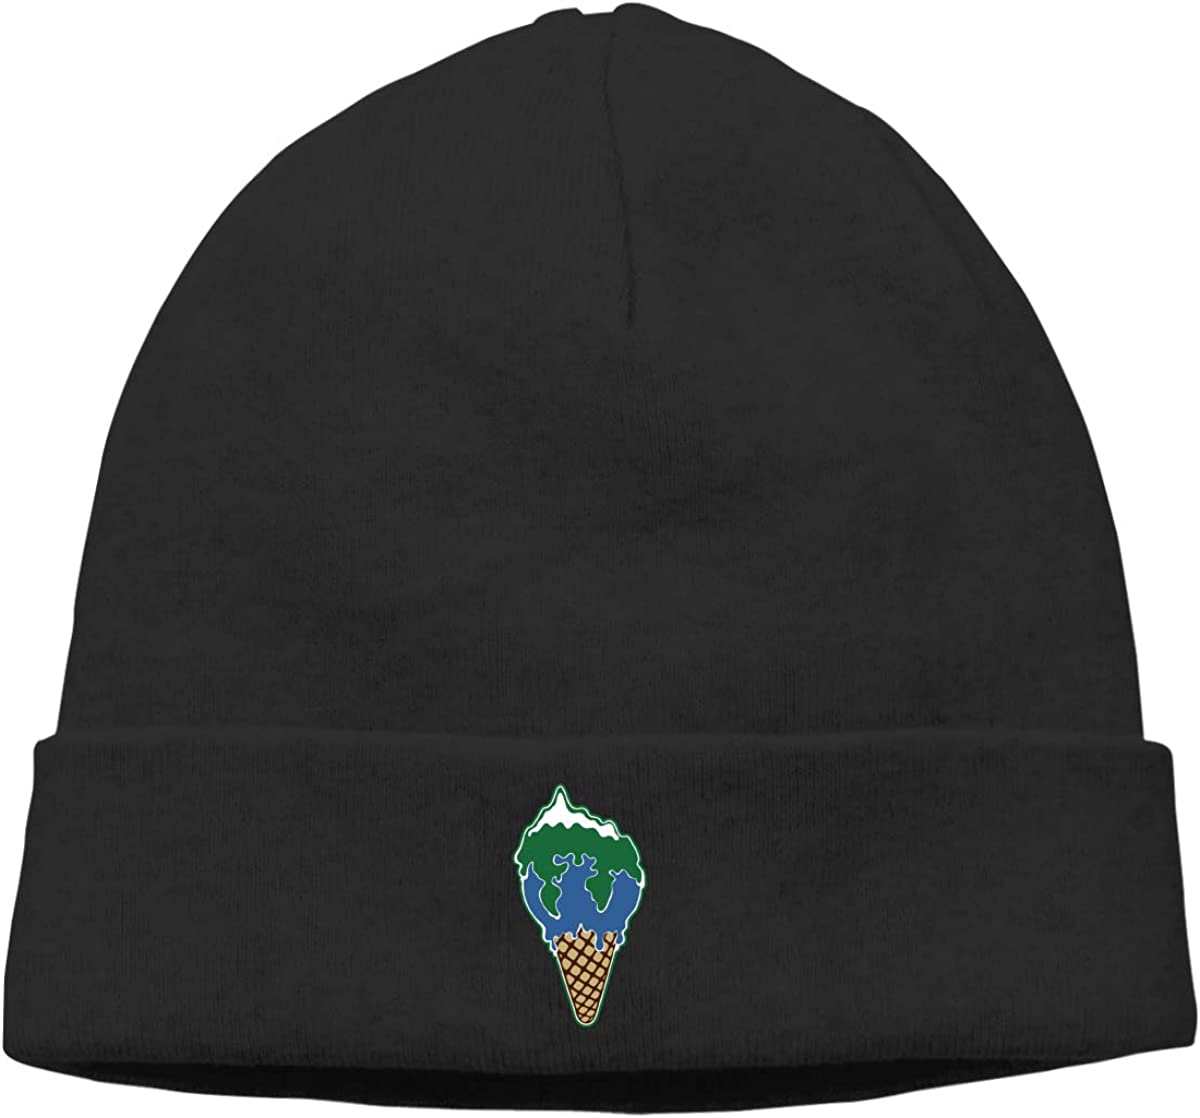 Melting Earth Ice Cream Men Women Deliciously Soft Daily Winter Beanie